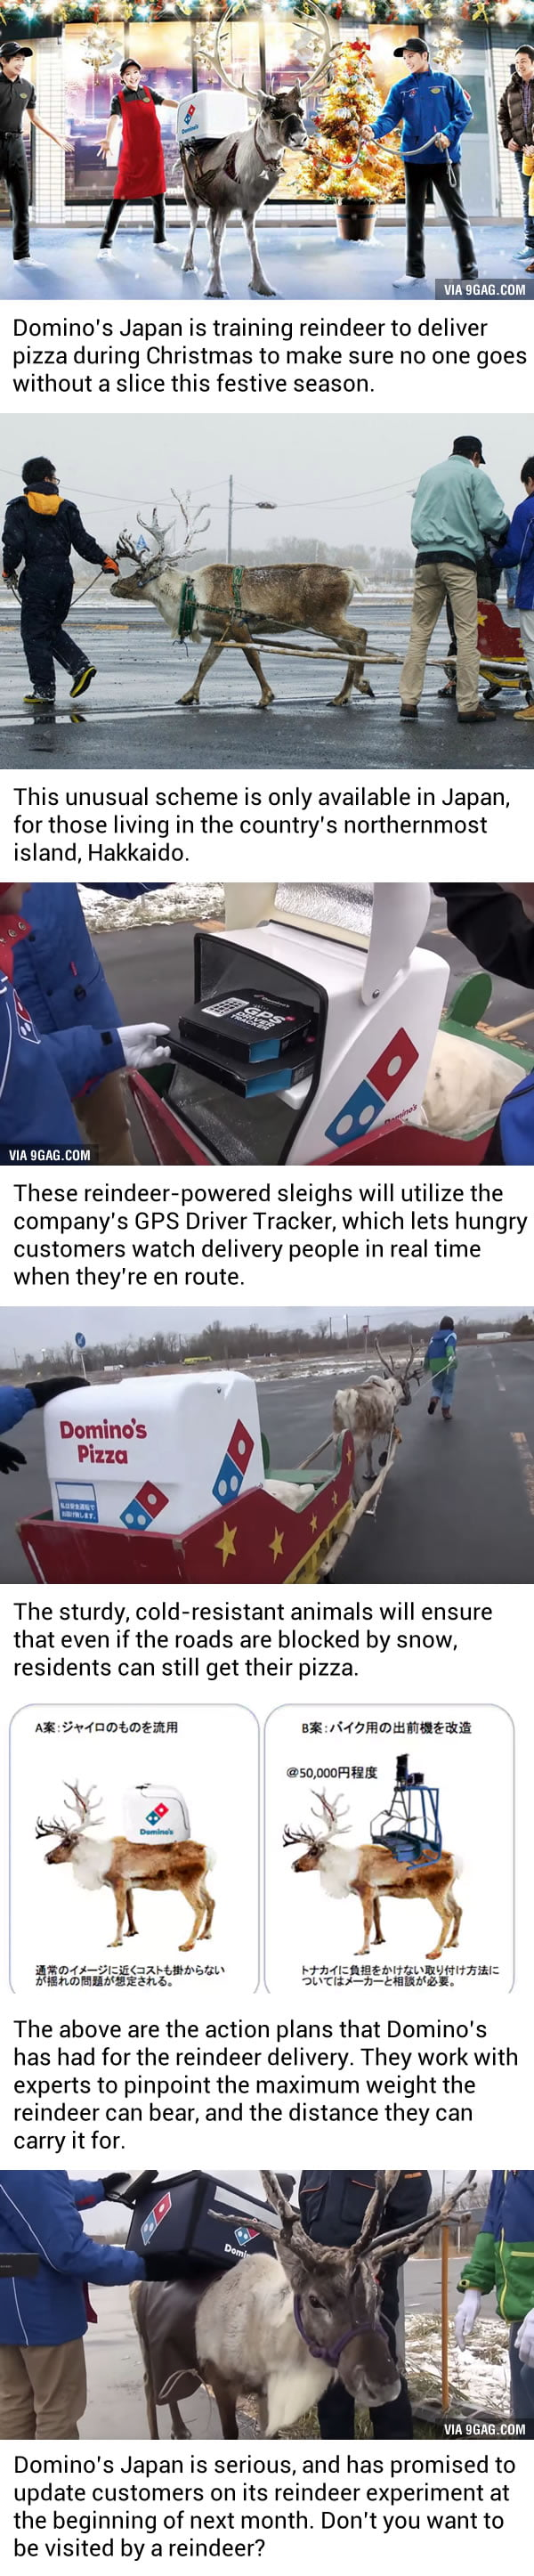 Domino's Japan Is Training Reindeer To Deliver Holiday Pizza. Like, For Real